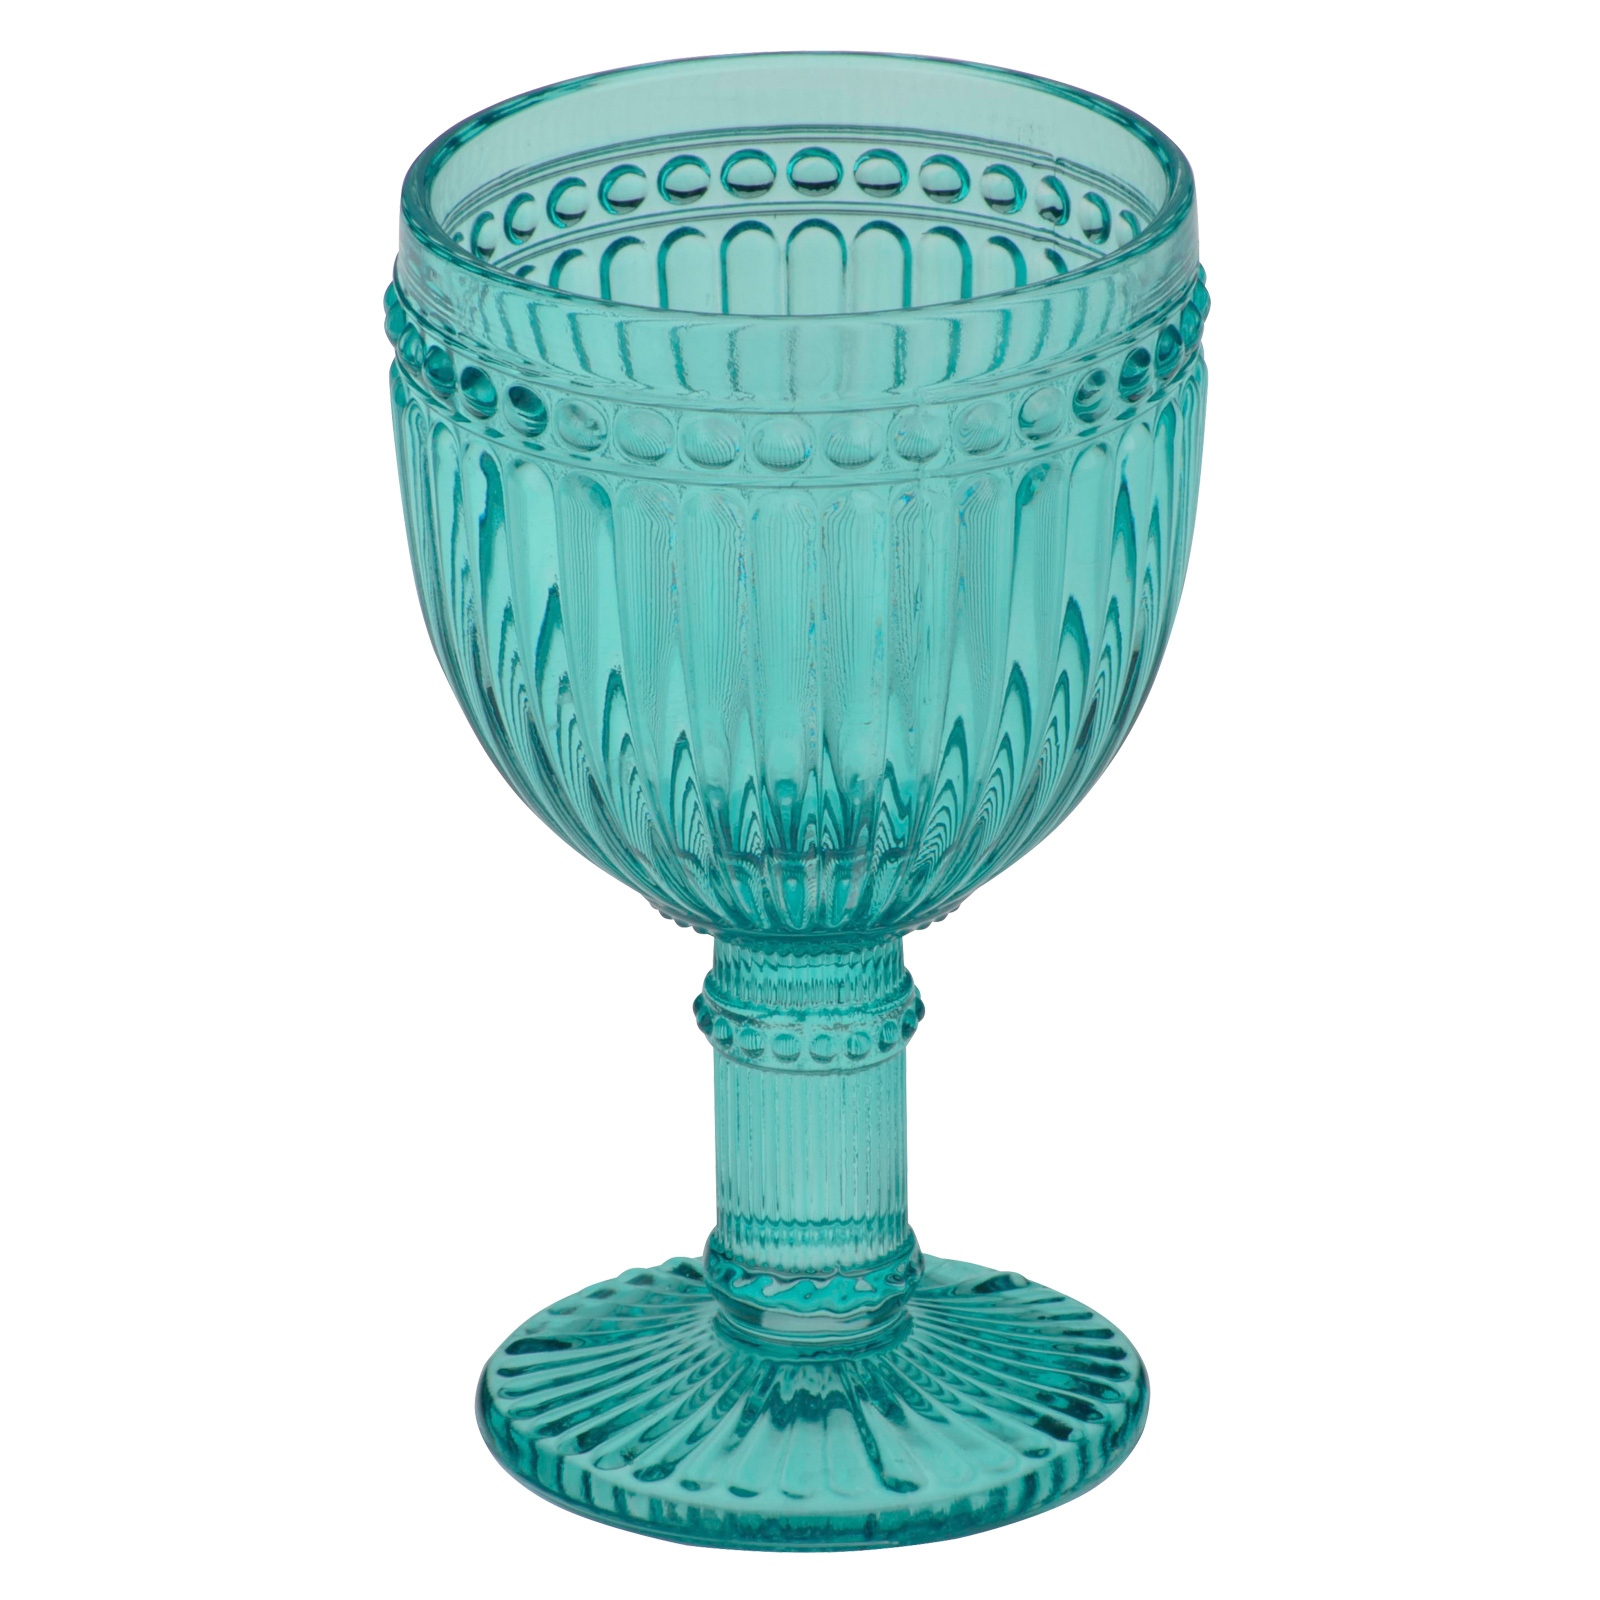 Set of 6 Loire Wine Glasses Aqua Blue by Anton Studio Designs